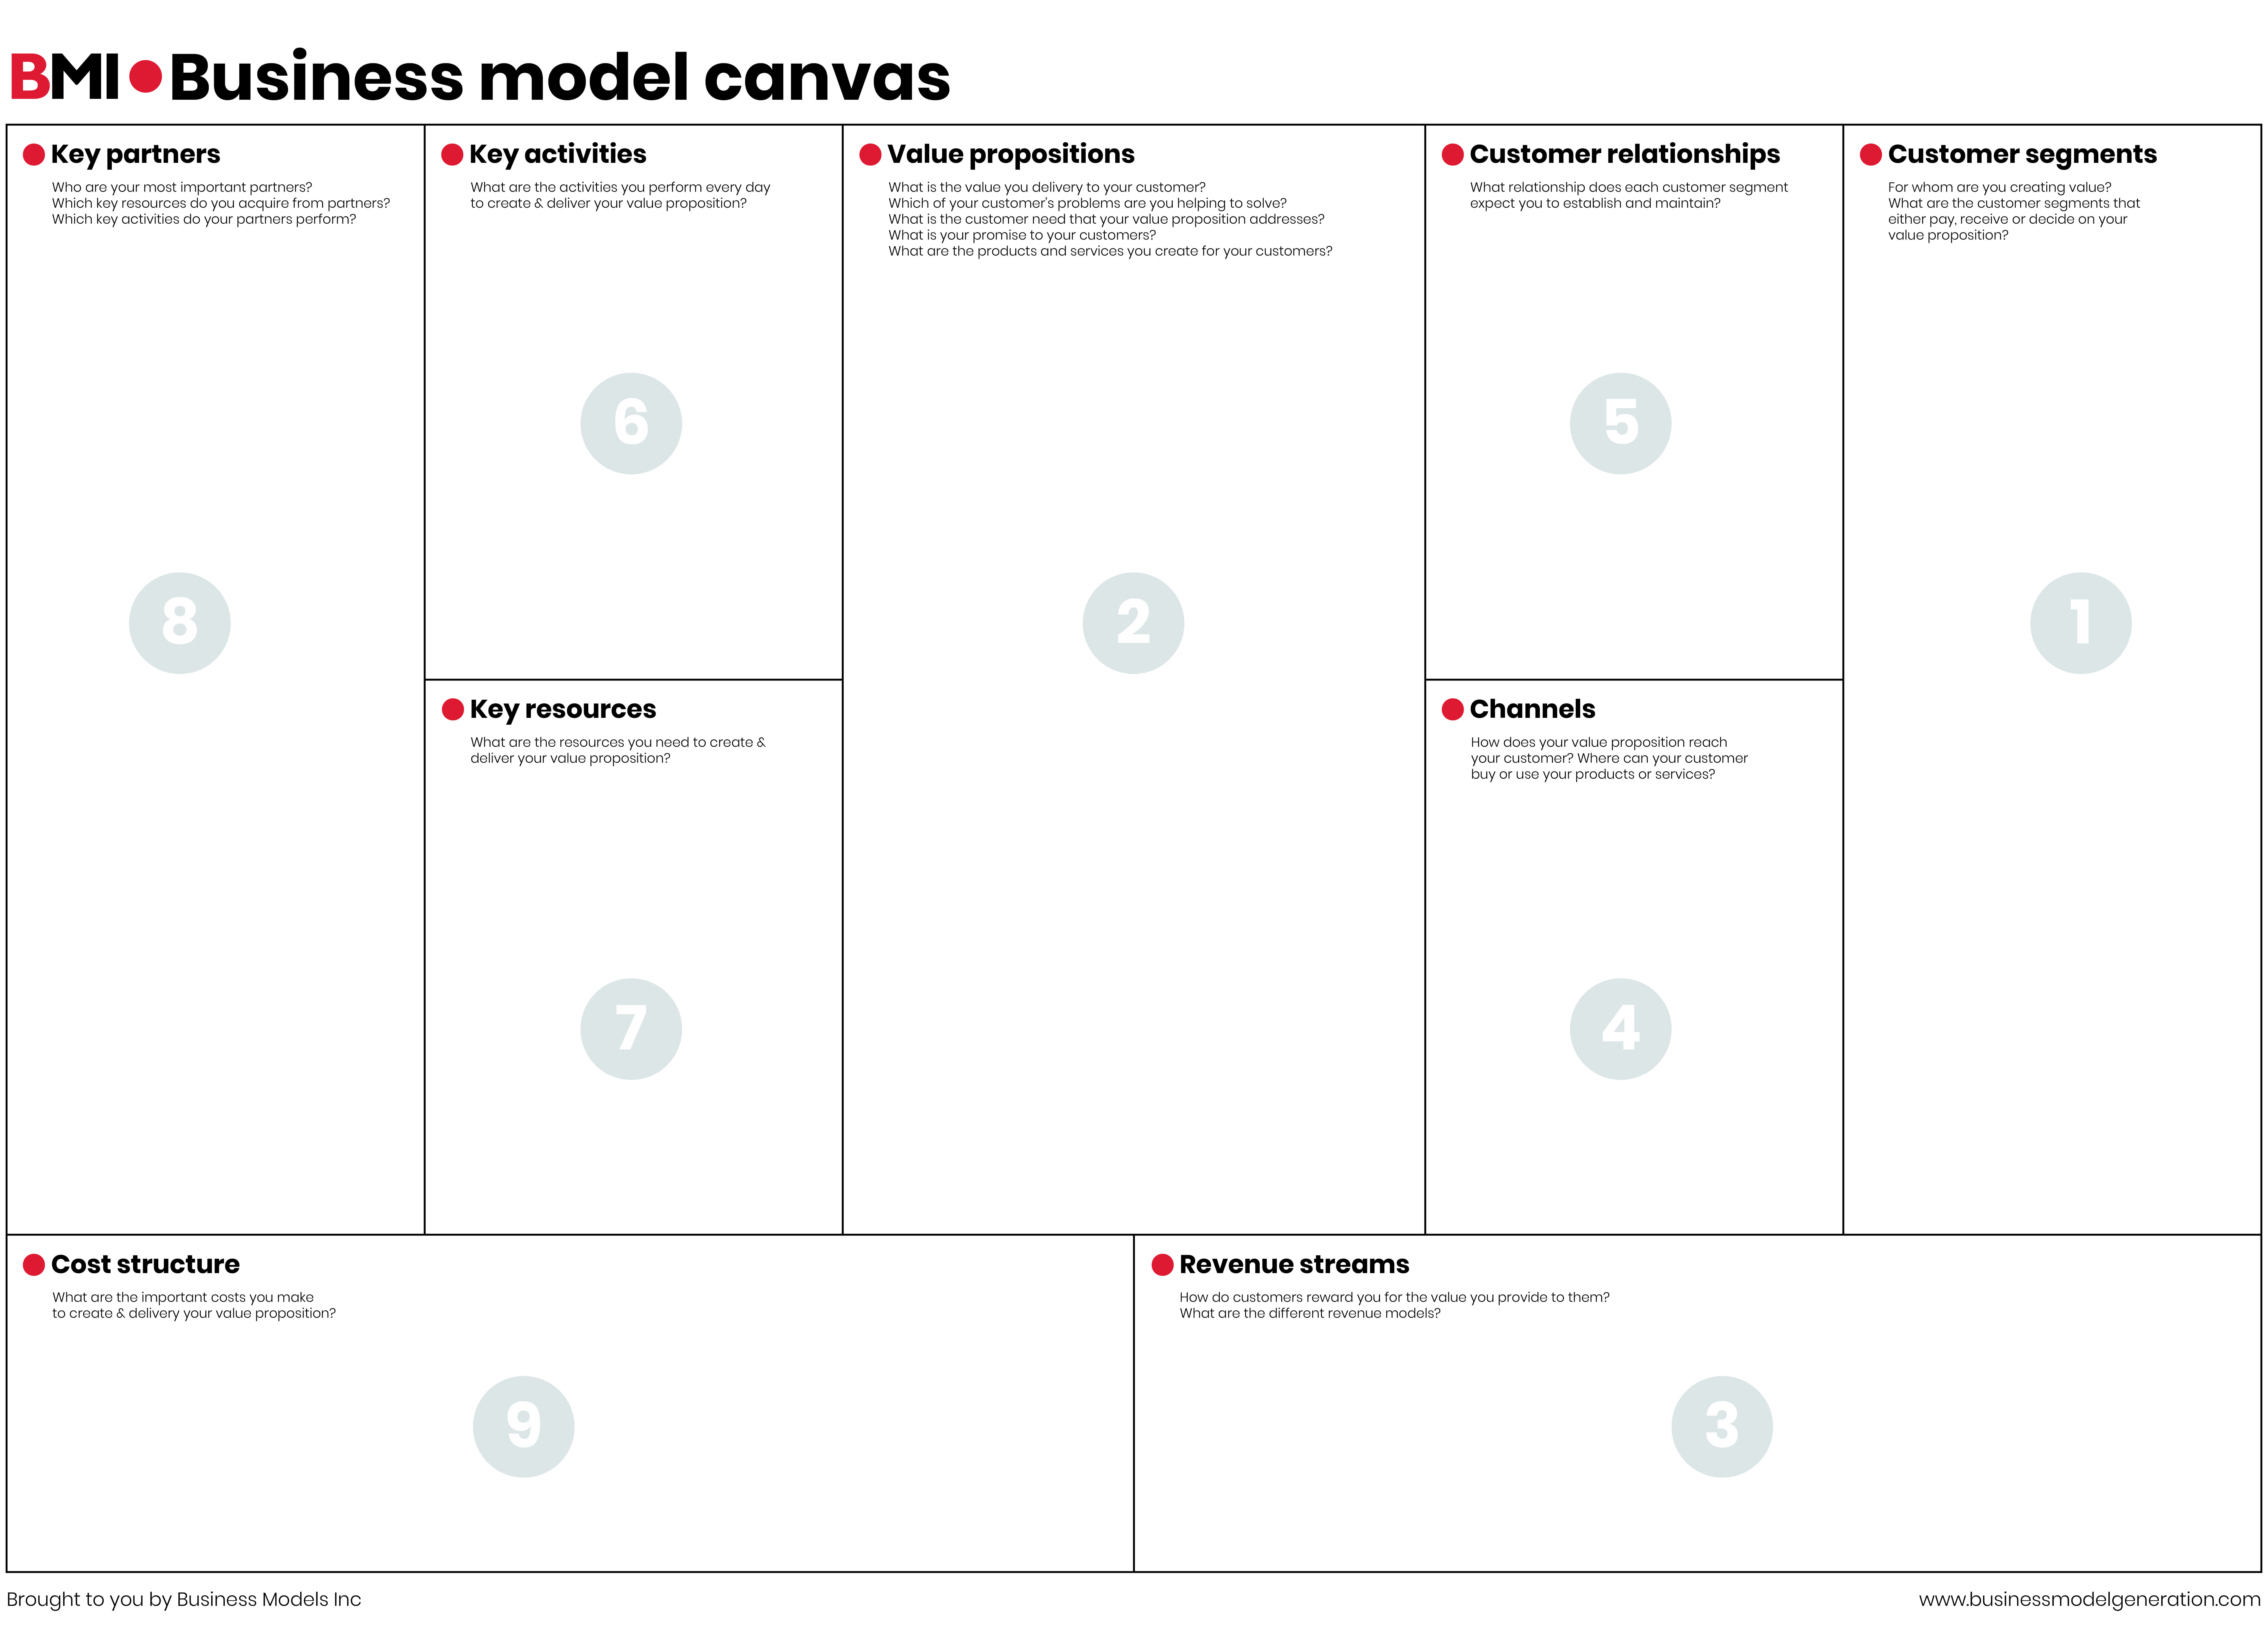 028 Template Ideas Business Model Canvas Download Word inside Business Model Canvas Word Template Download